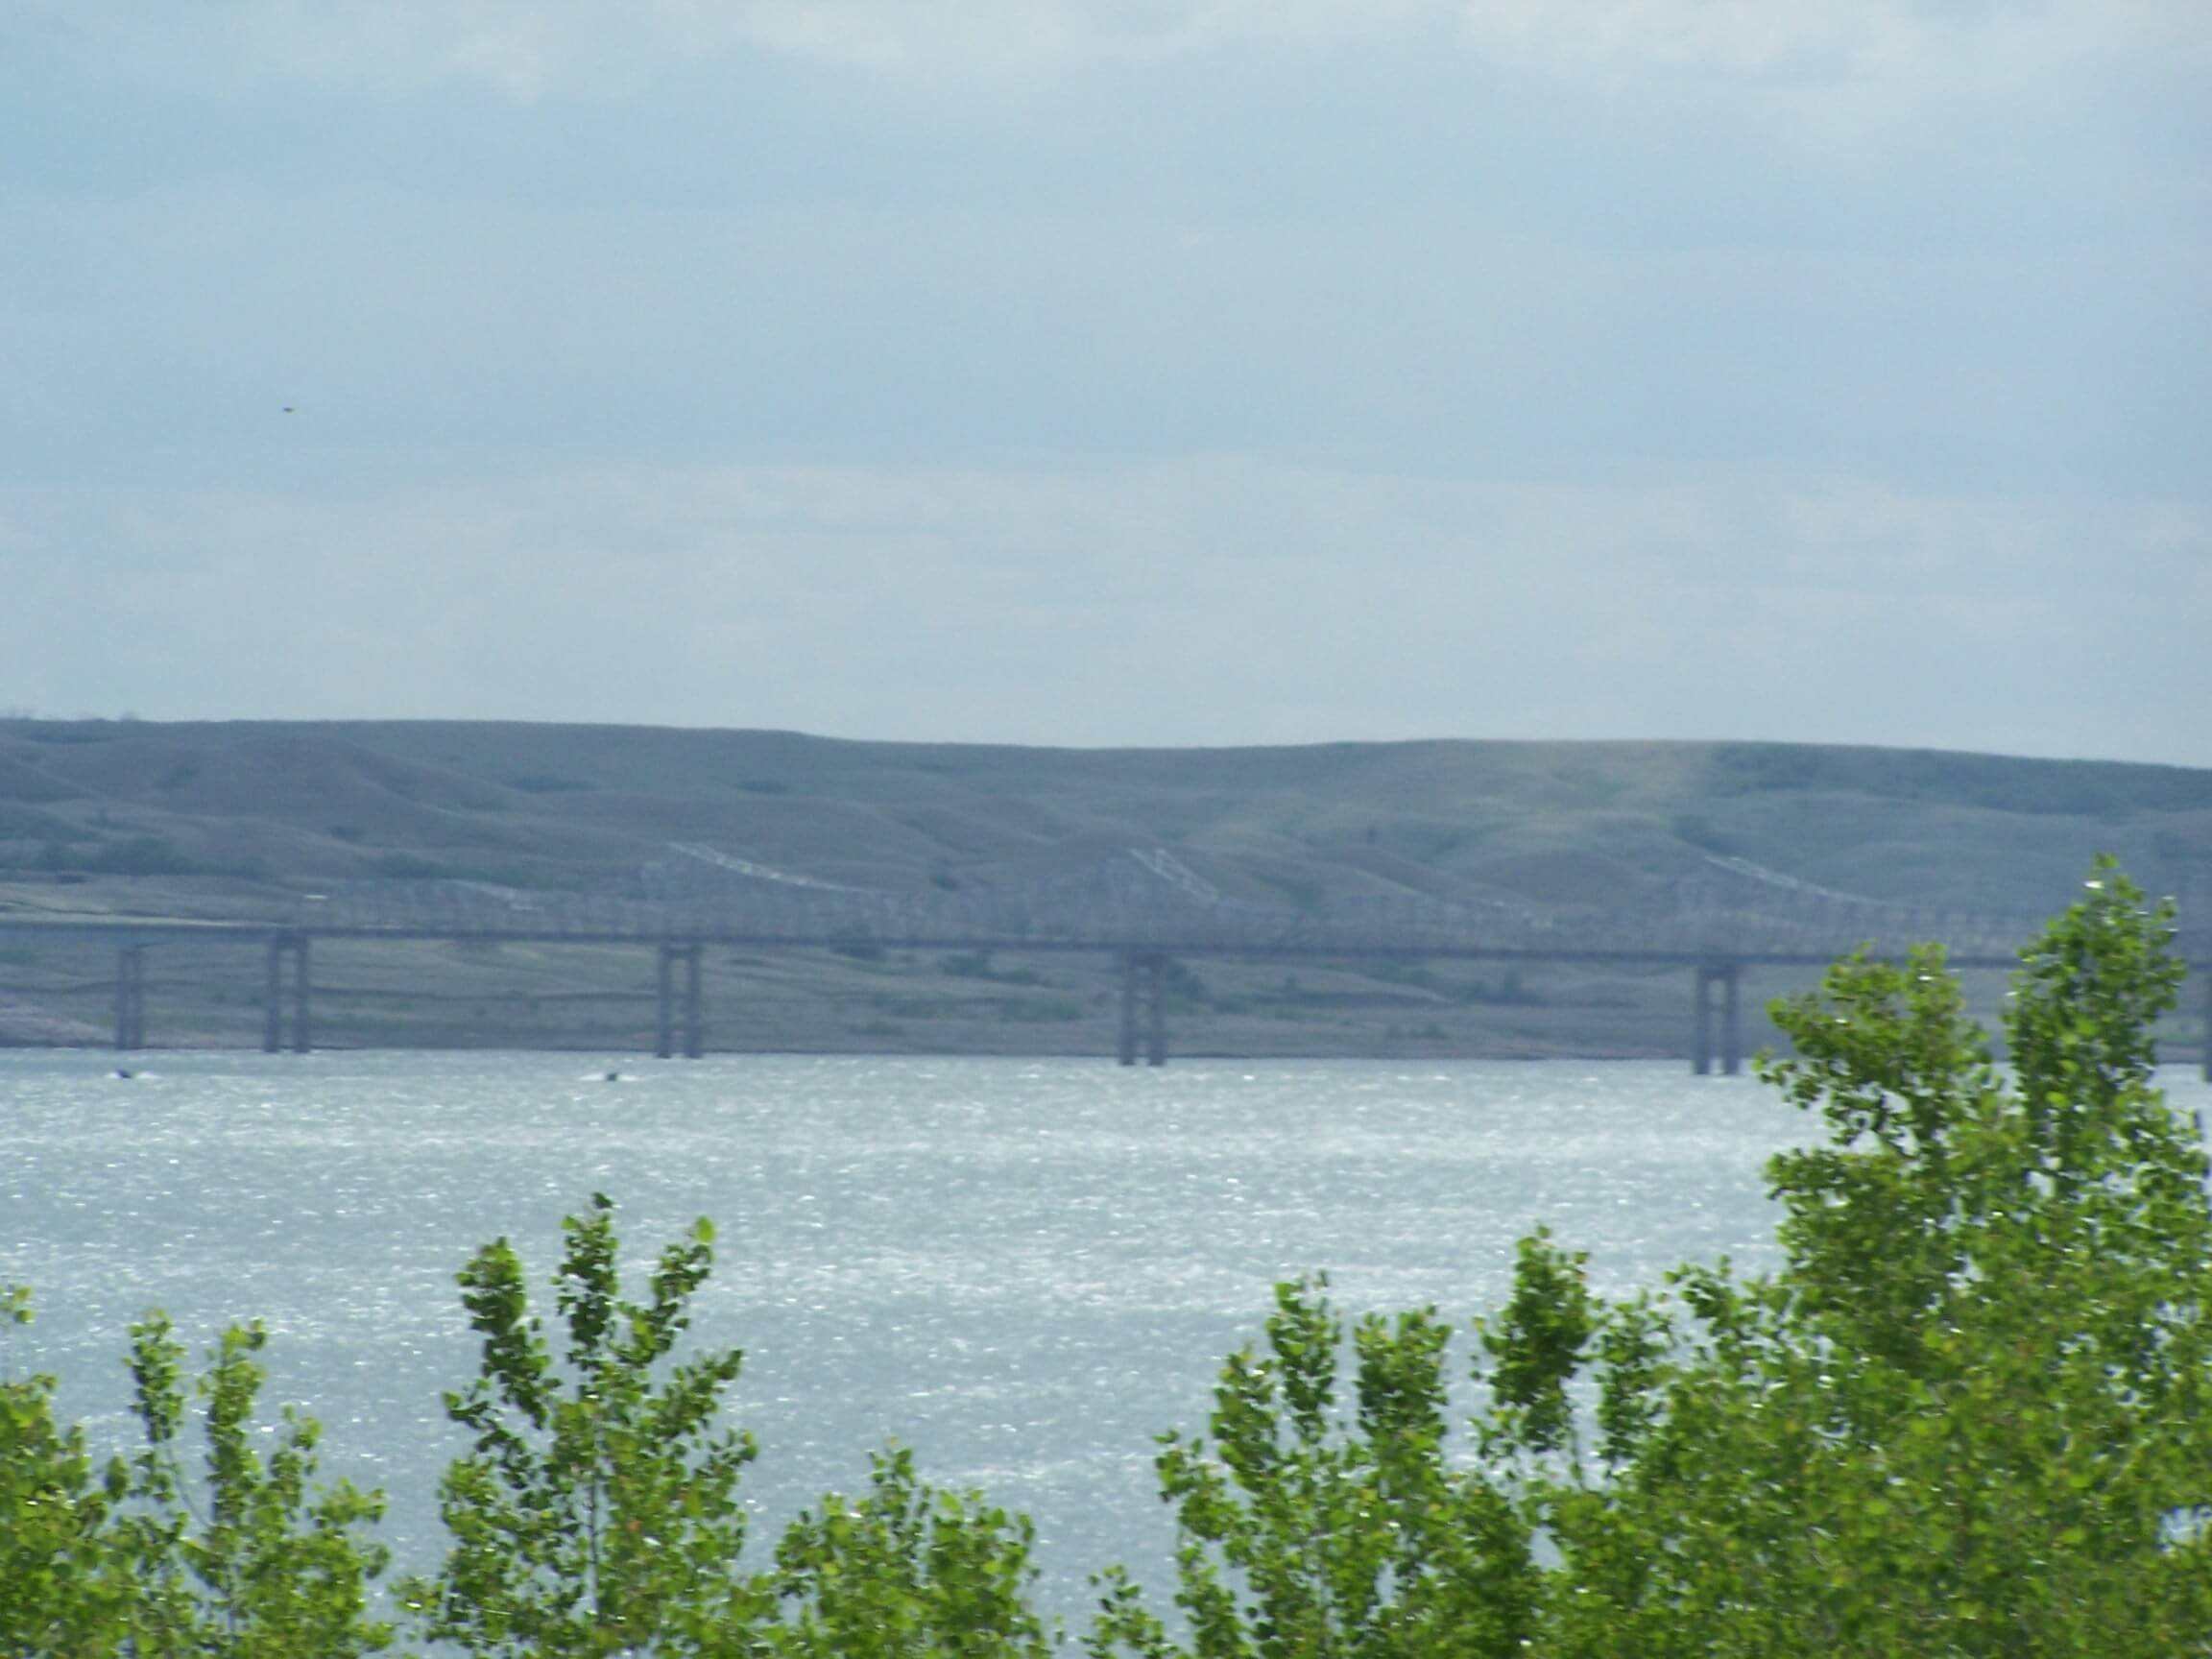 South dakota lakes oahe bridgeoahe bridge south dakota for Missouri river fishing report south dakota